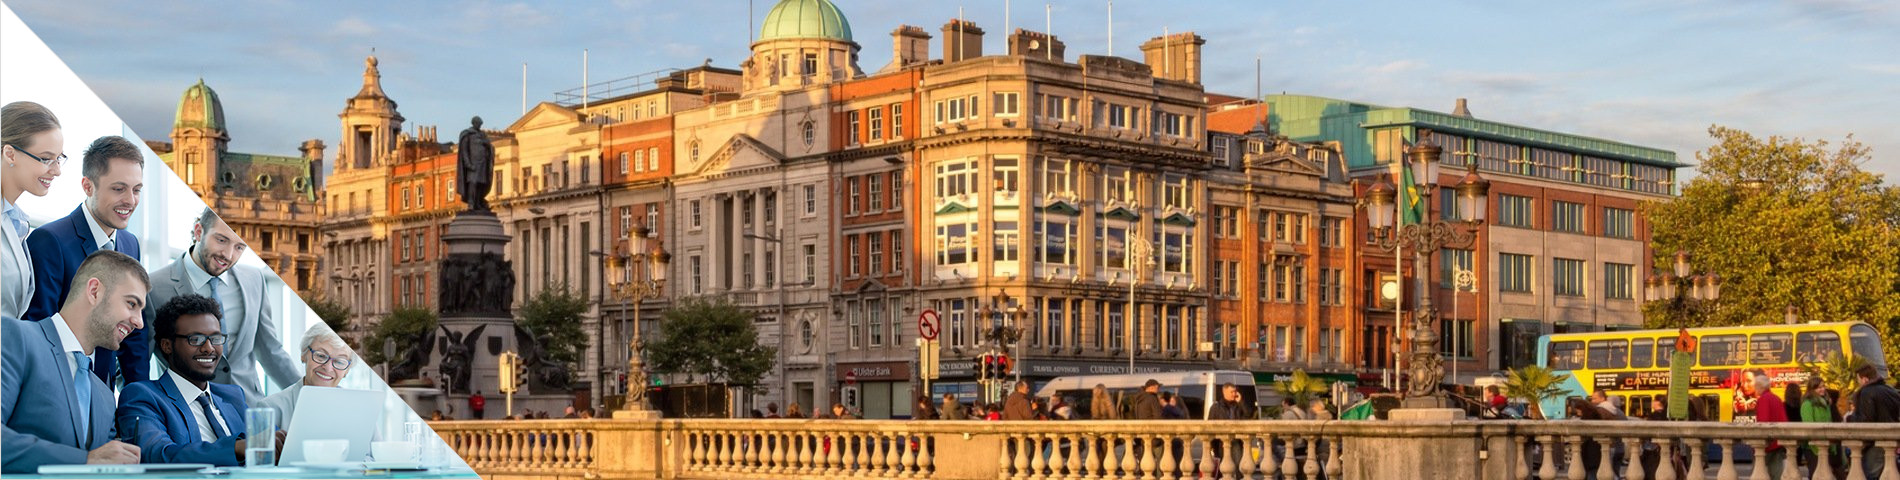 Dublin - Business Gruppe